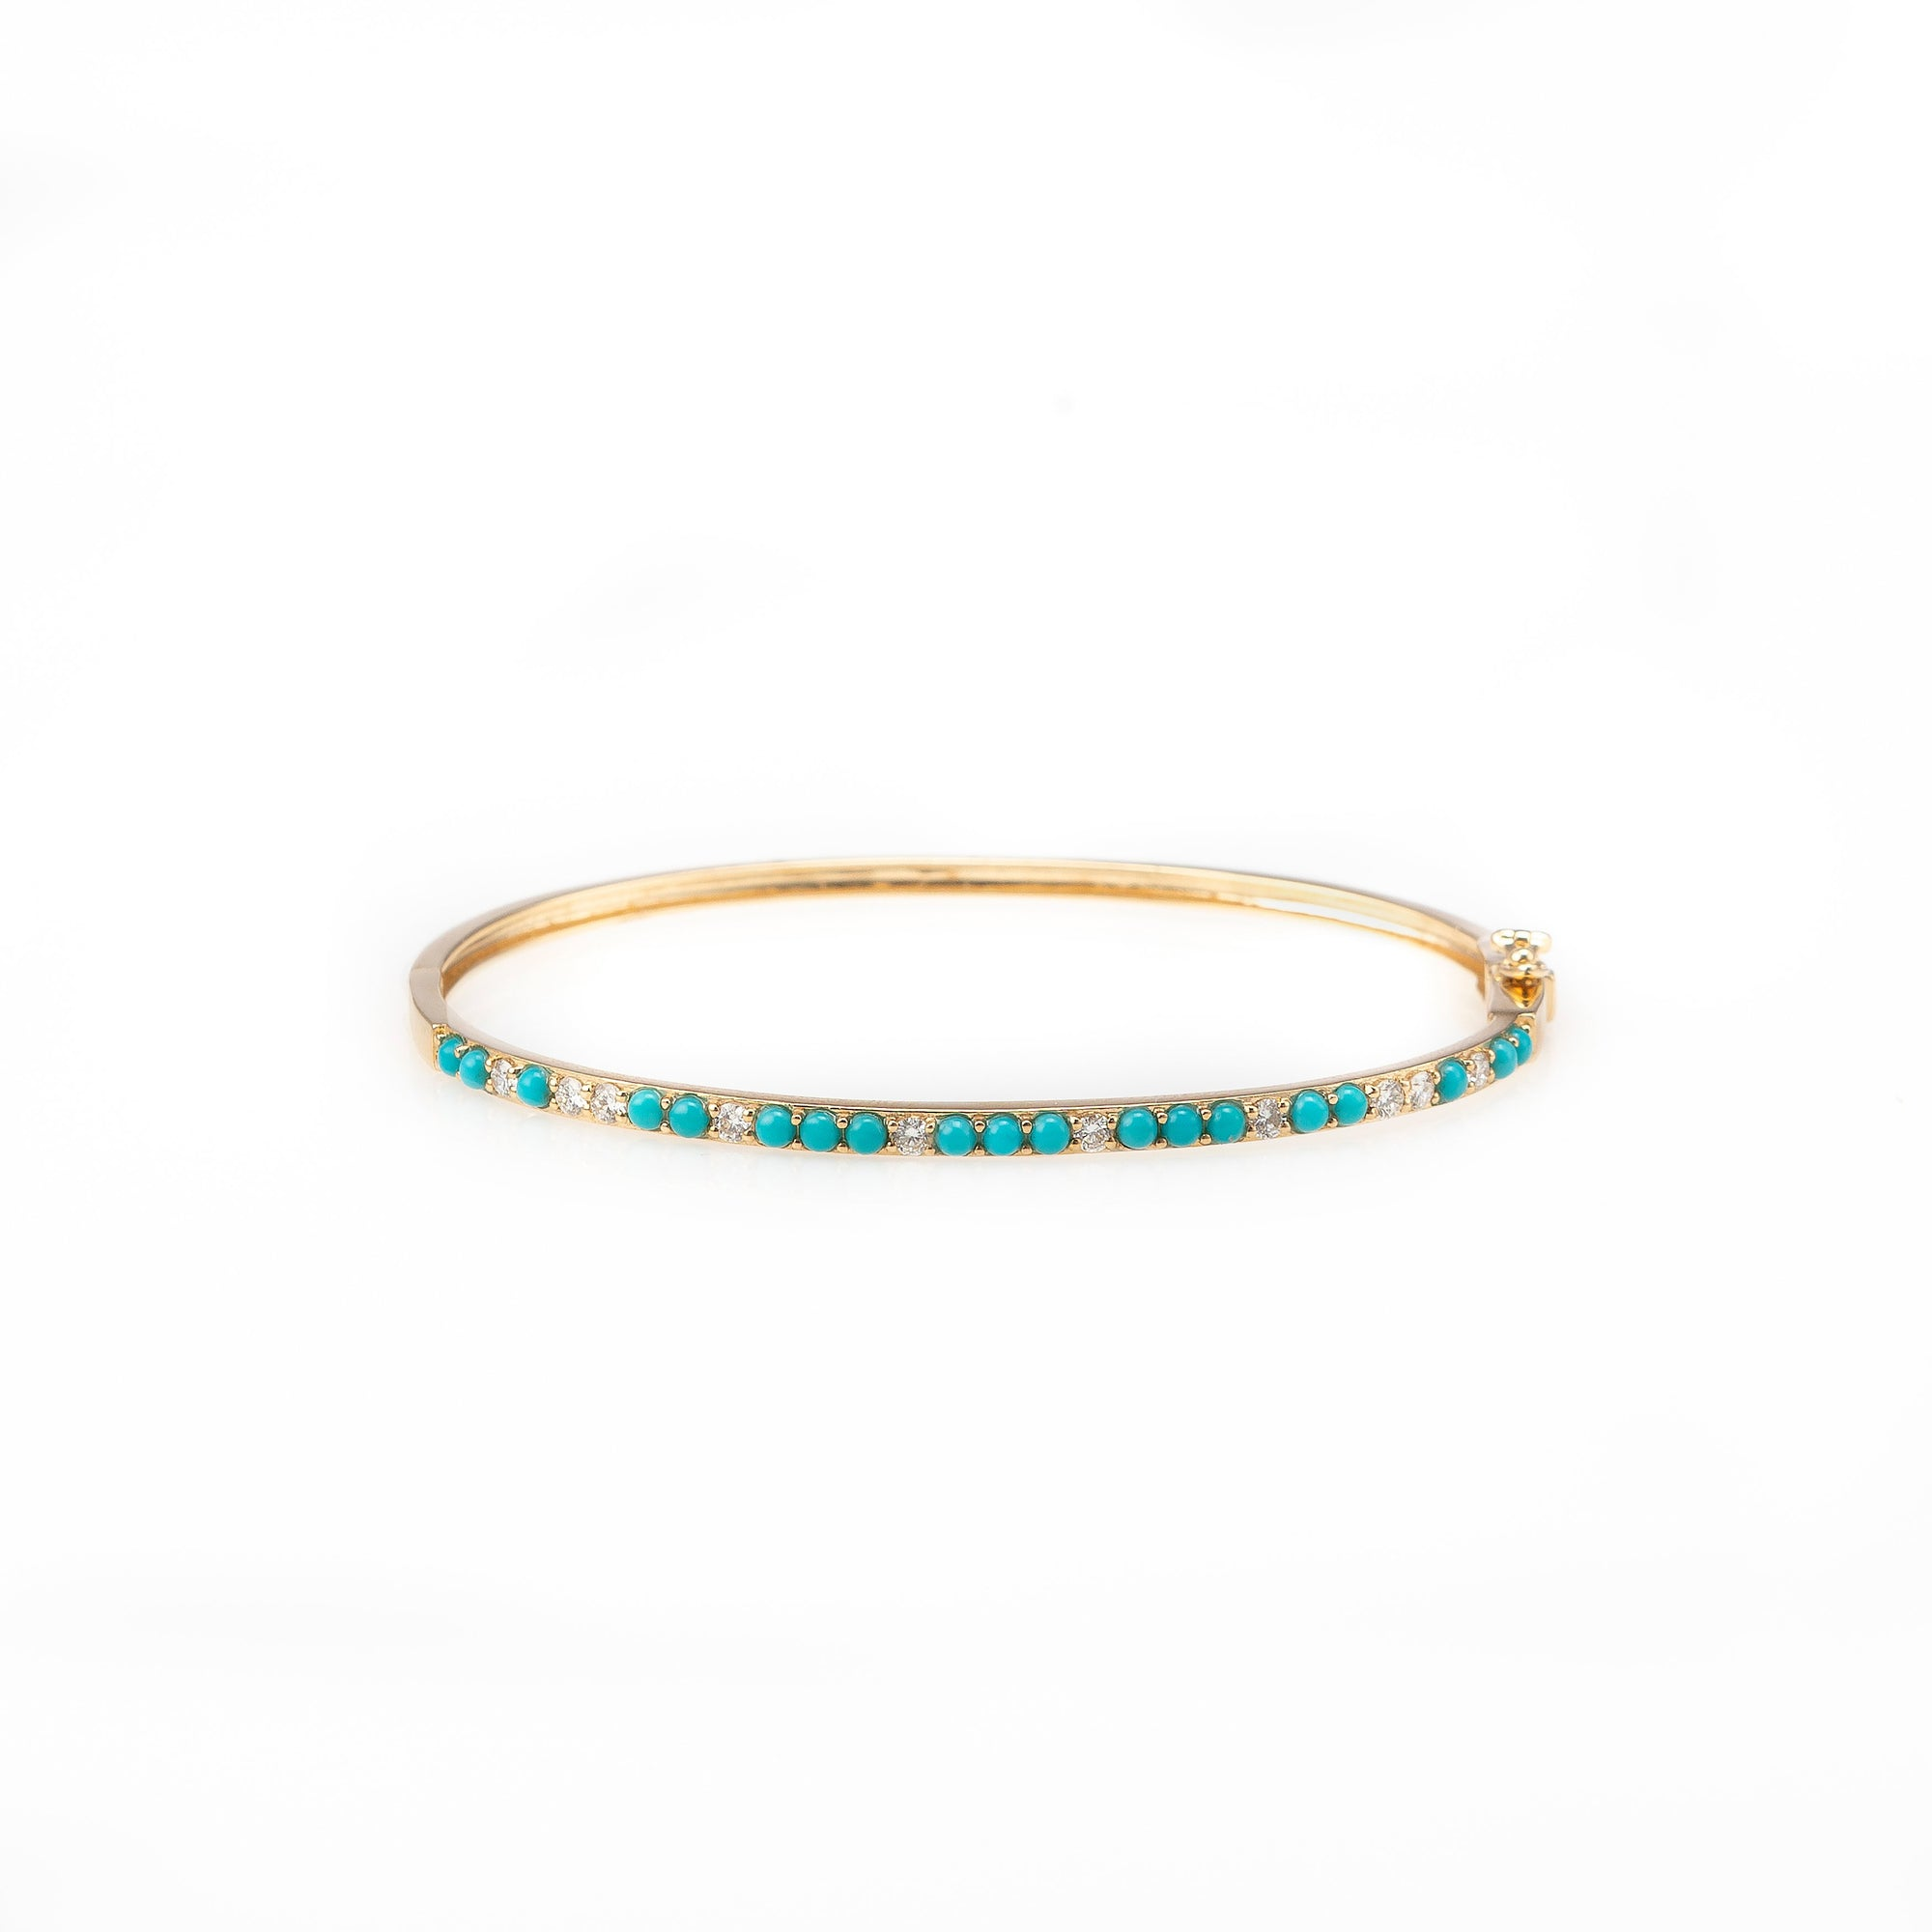 Turquoise Bangle with Diamonds-Bracelets-Zofia Day Co.